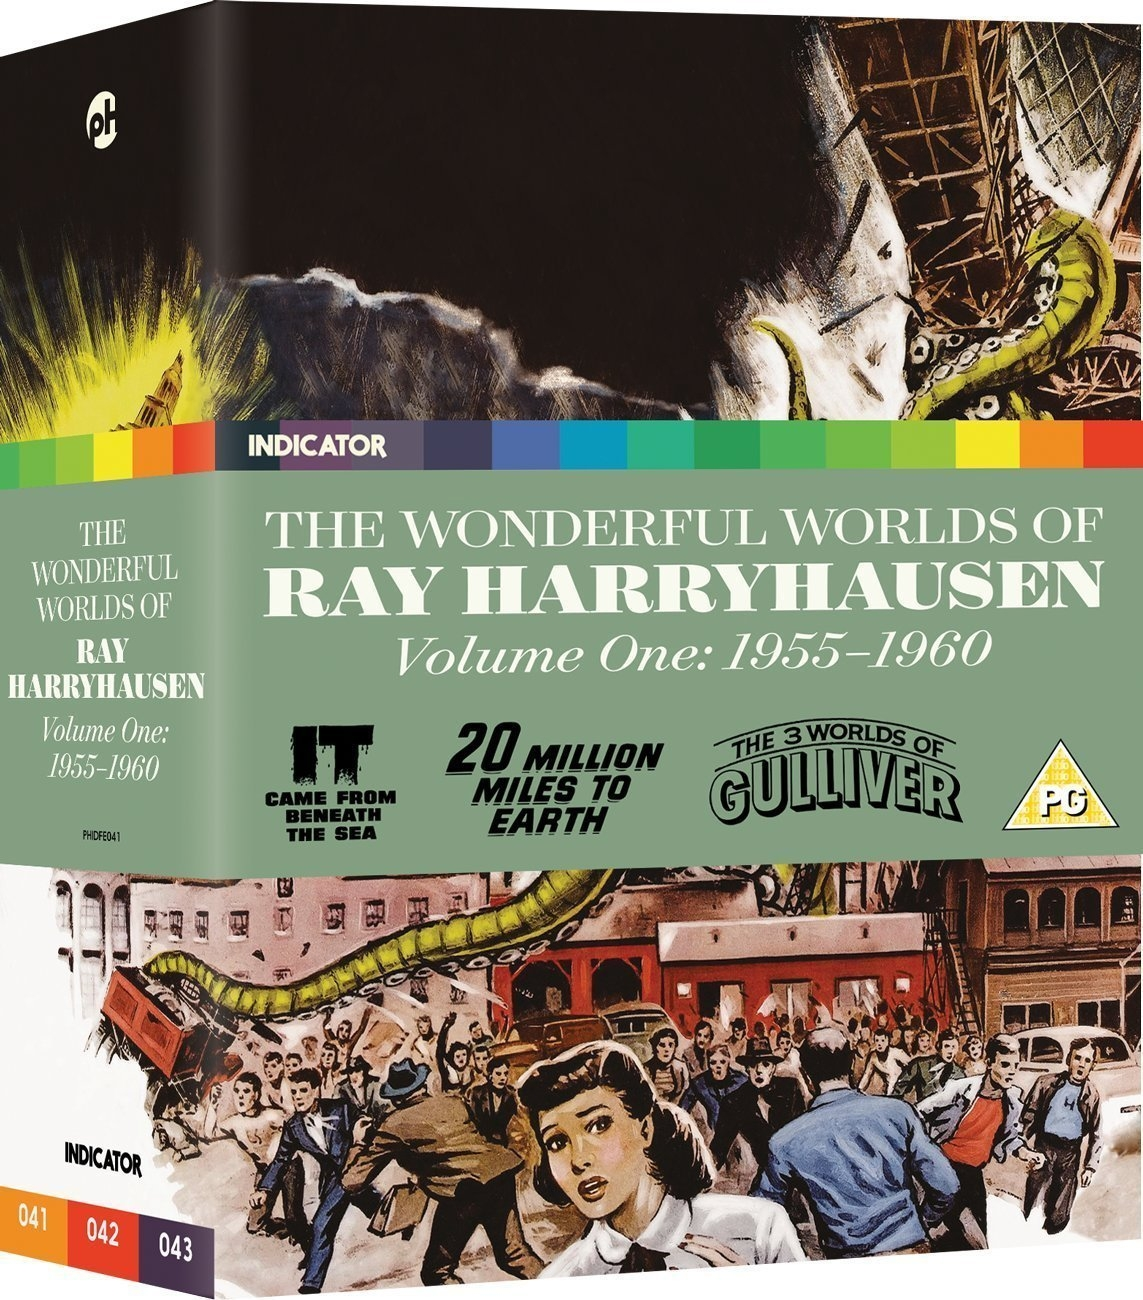 Buy The Wonderful Worlds of Ray Harryhausen: Volume One - 1955-1960